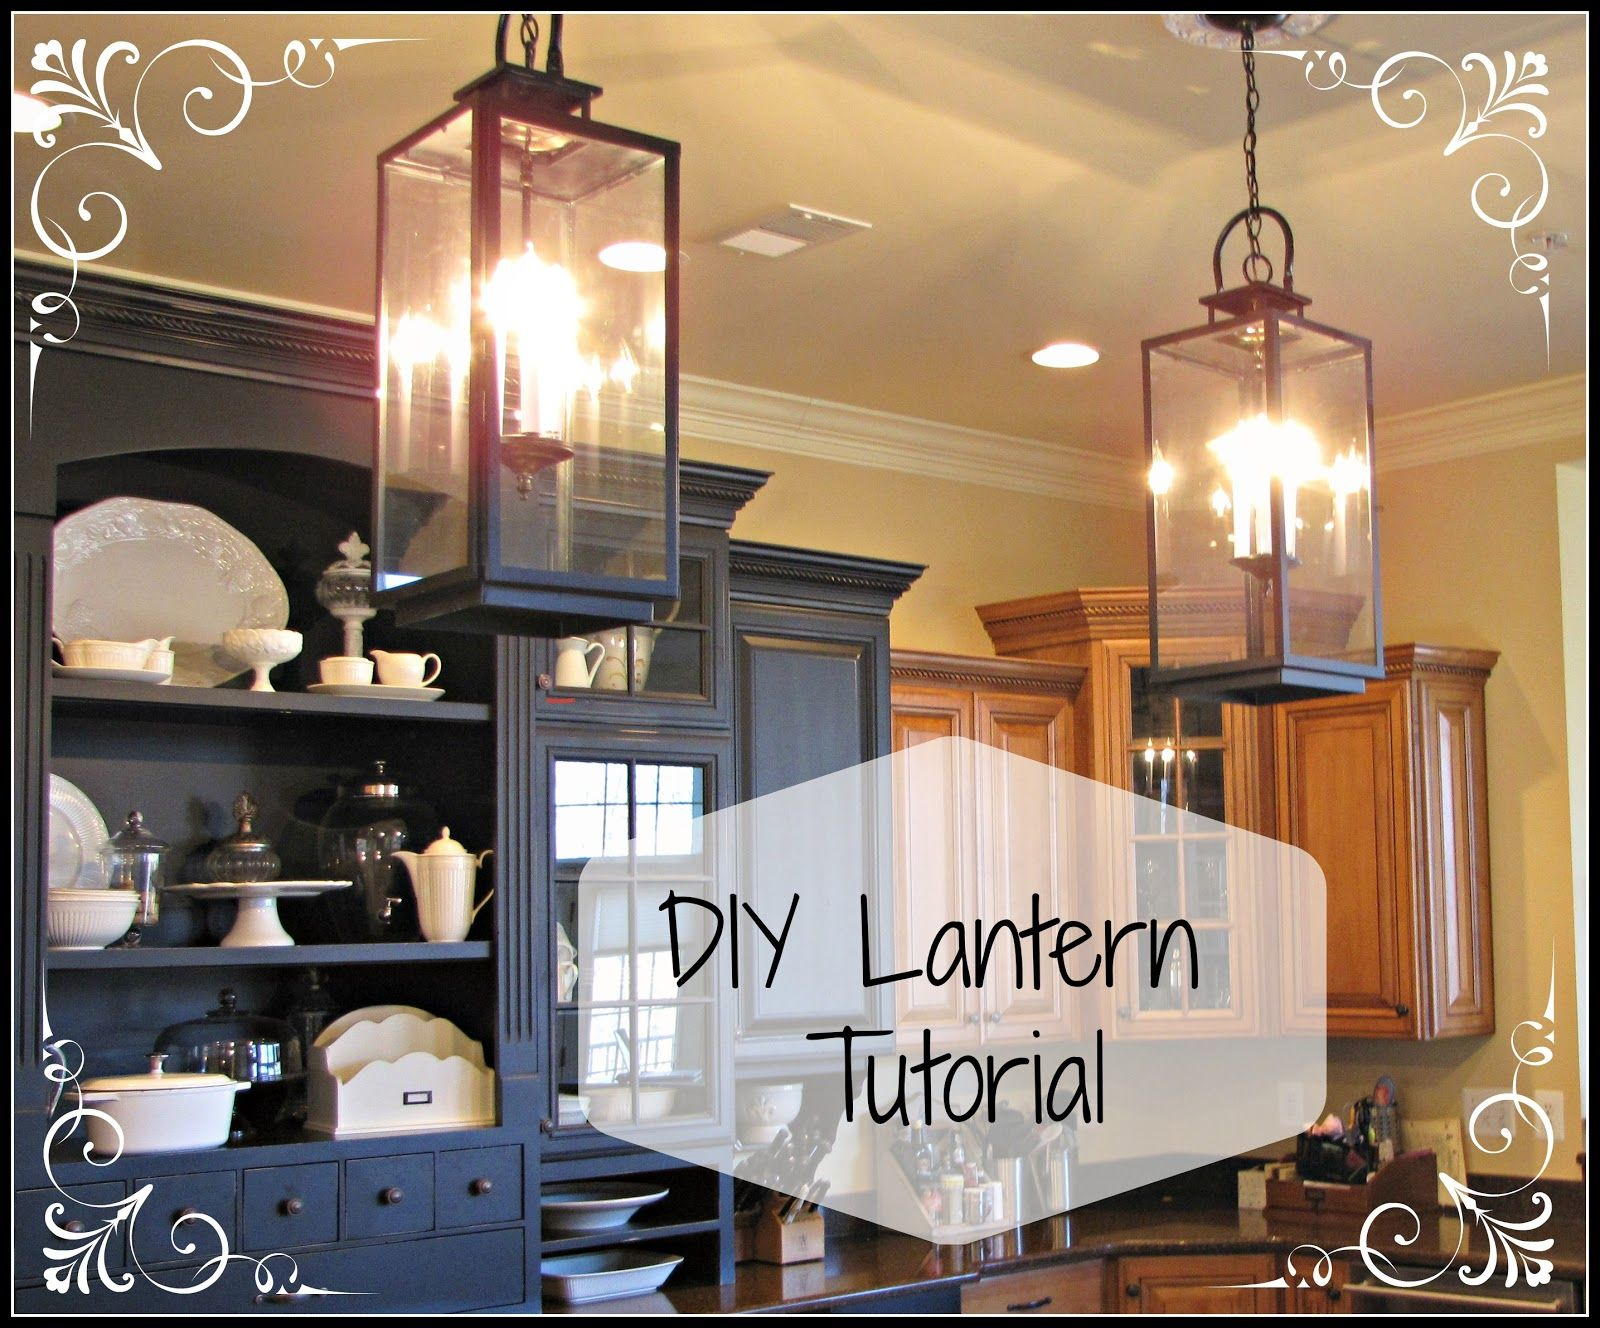 Lipstick And Sawdust Diy Lantern Tutorial For Outside The Laundry Room